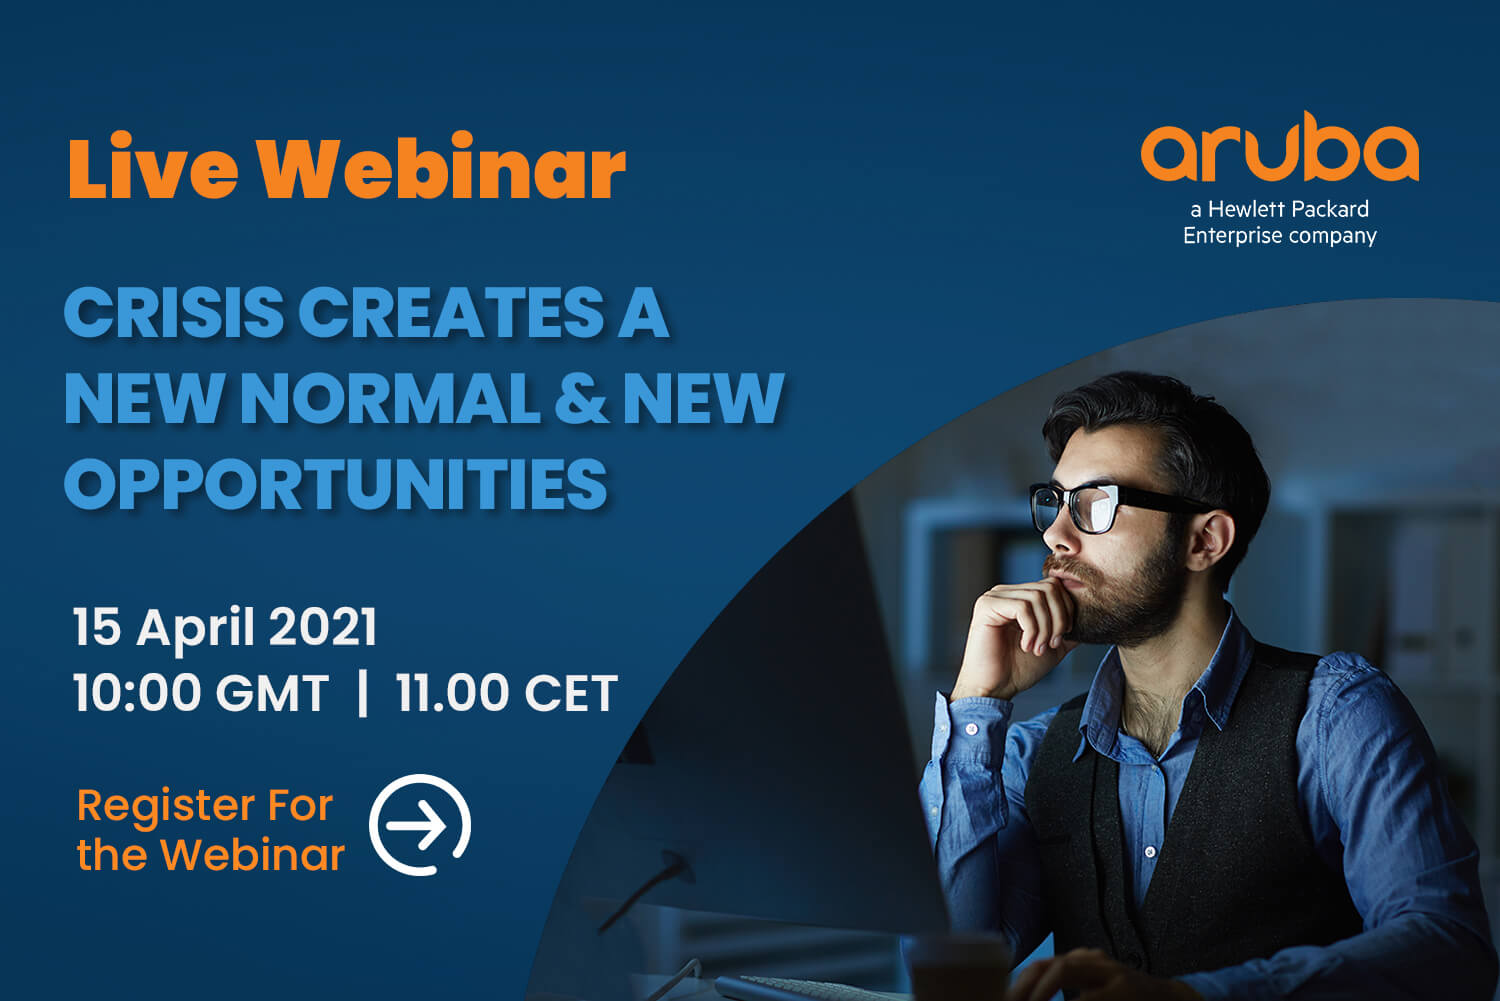 WEBINAR: CRISIS CREATES A NEW NORMAL & NEW OPPORTUNITIES